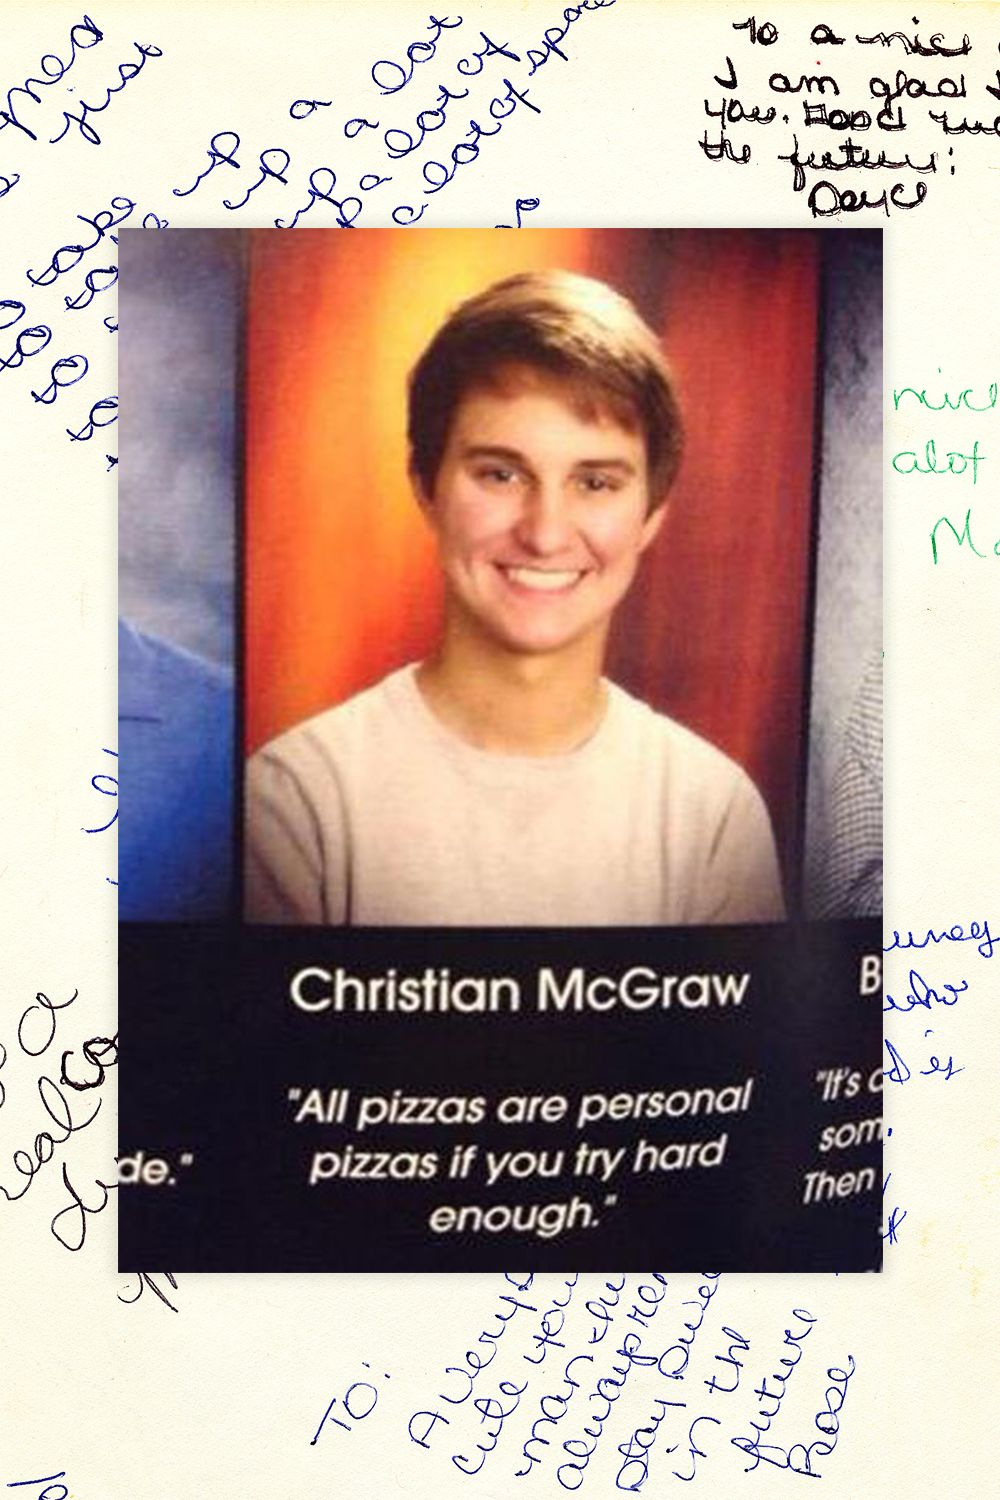 Yearbook Quotes | Hilarious Yearbook Quotes 40 Best Funny Viral Yearbook Photos